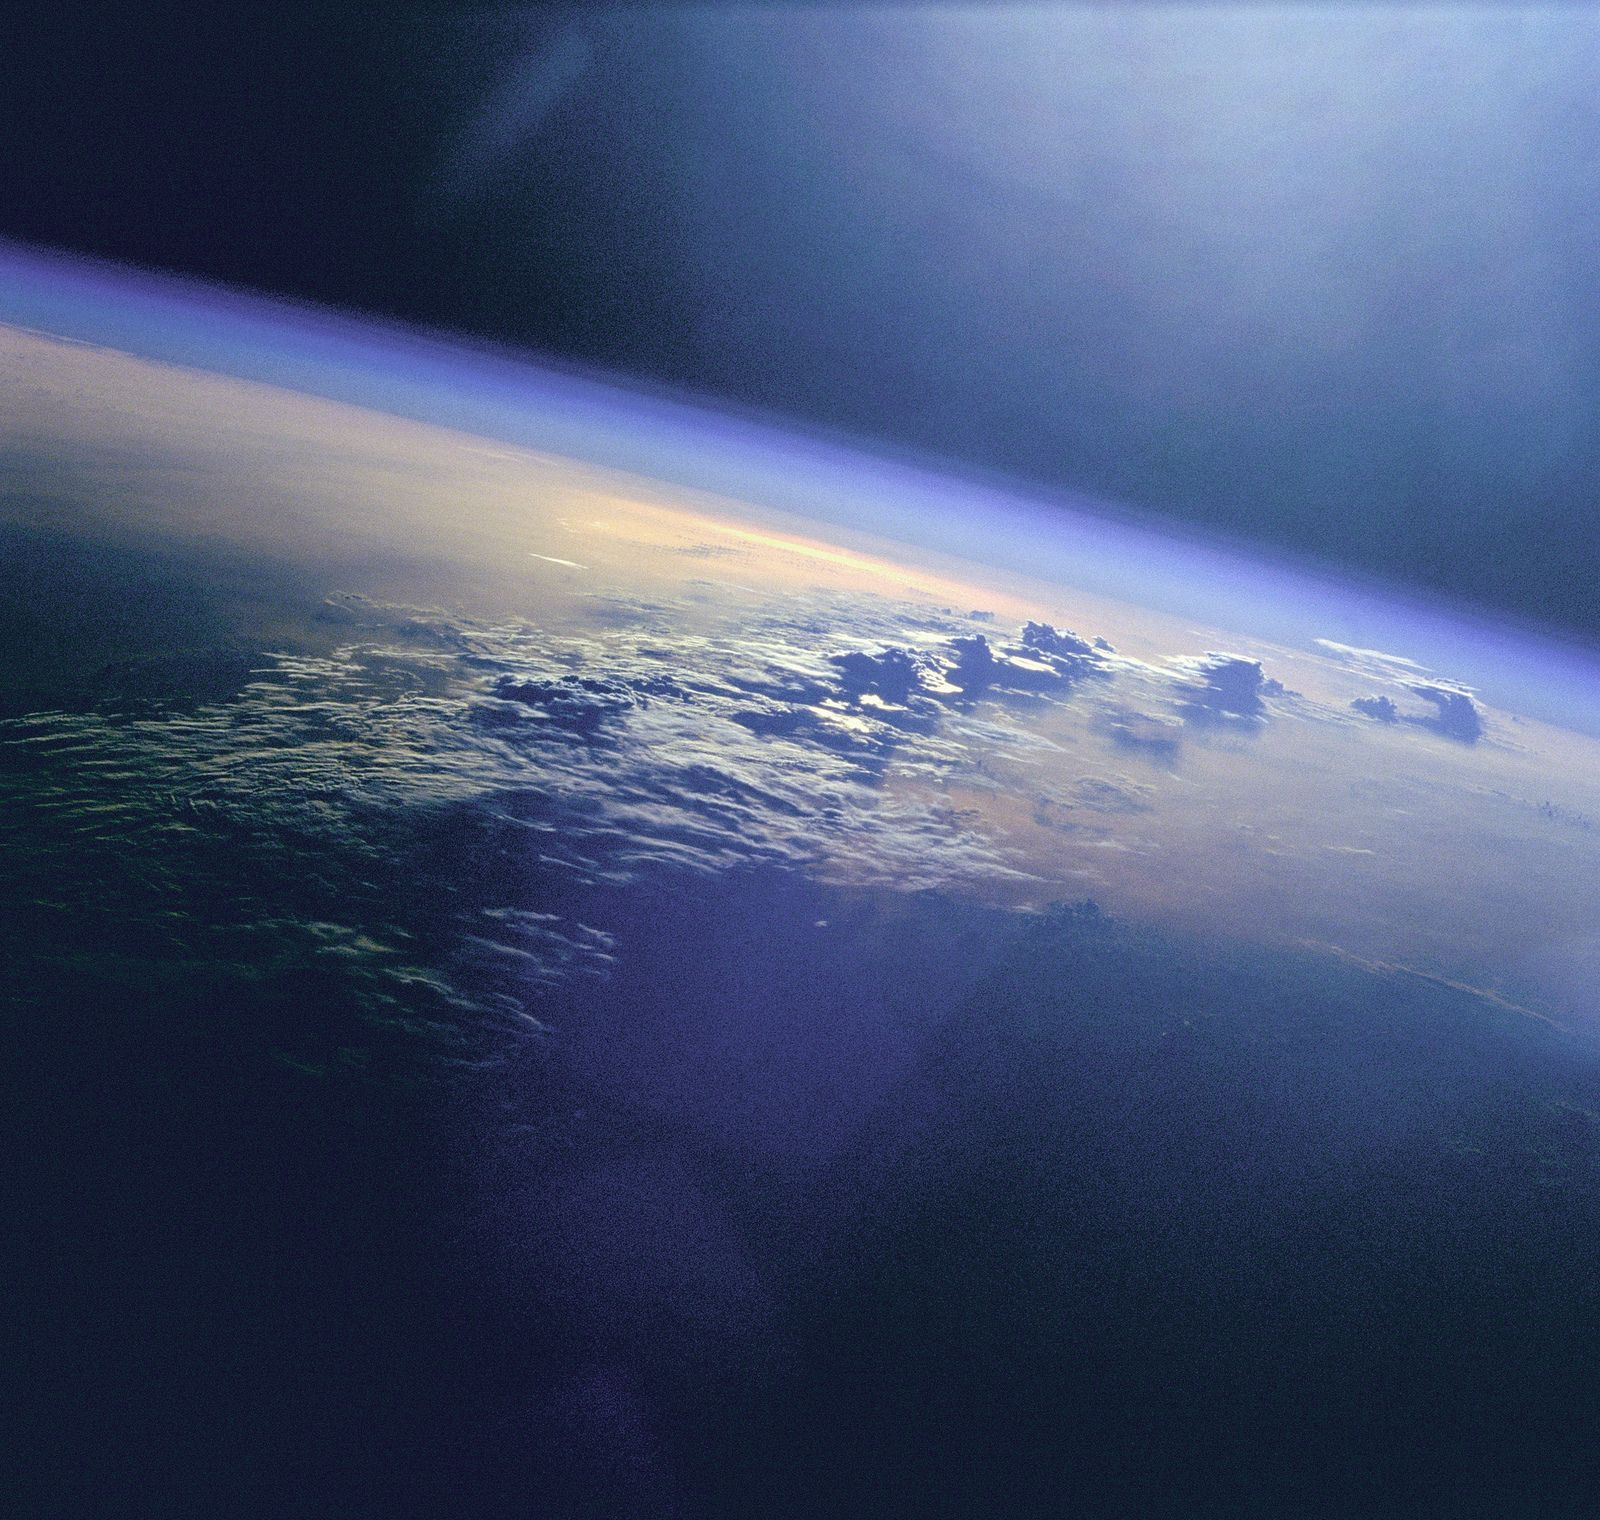 Clouds and Sunglint over Indian Ocean | Flickr - Photo Sharing!